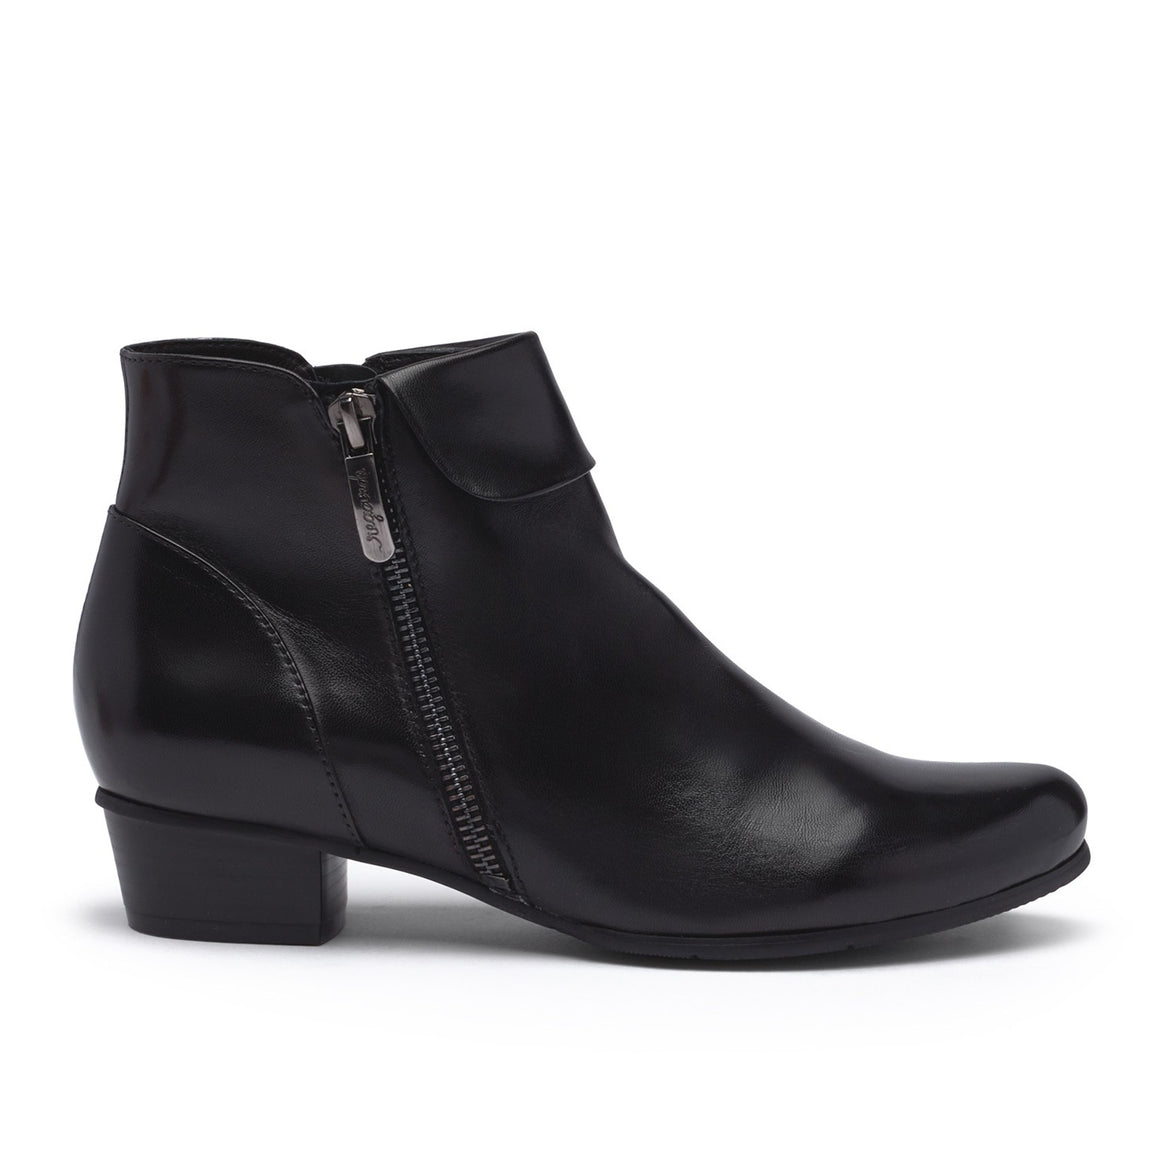 Stefany 333 for Women in Black